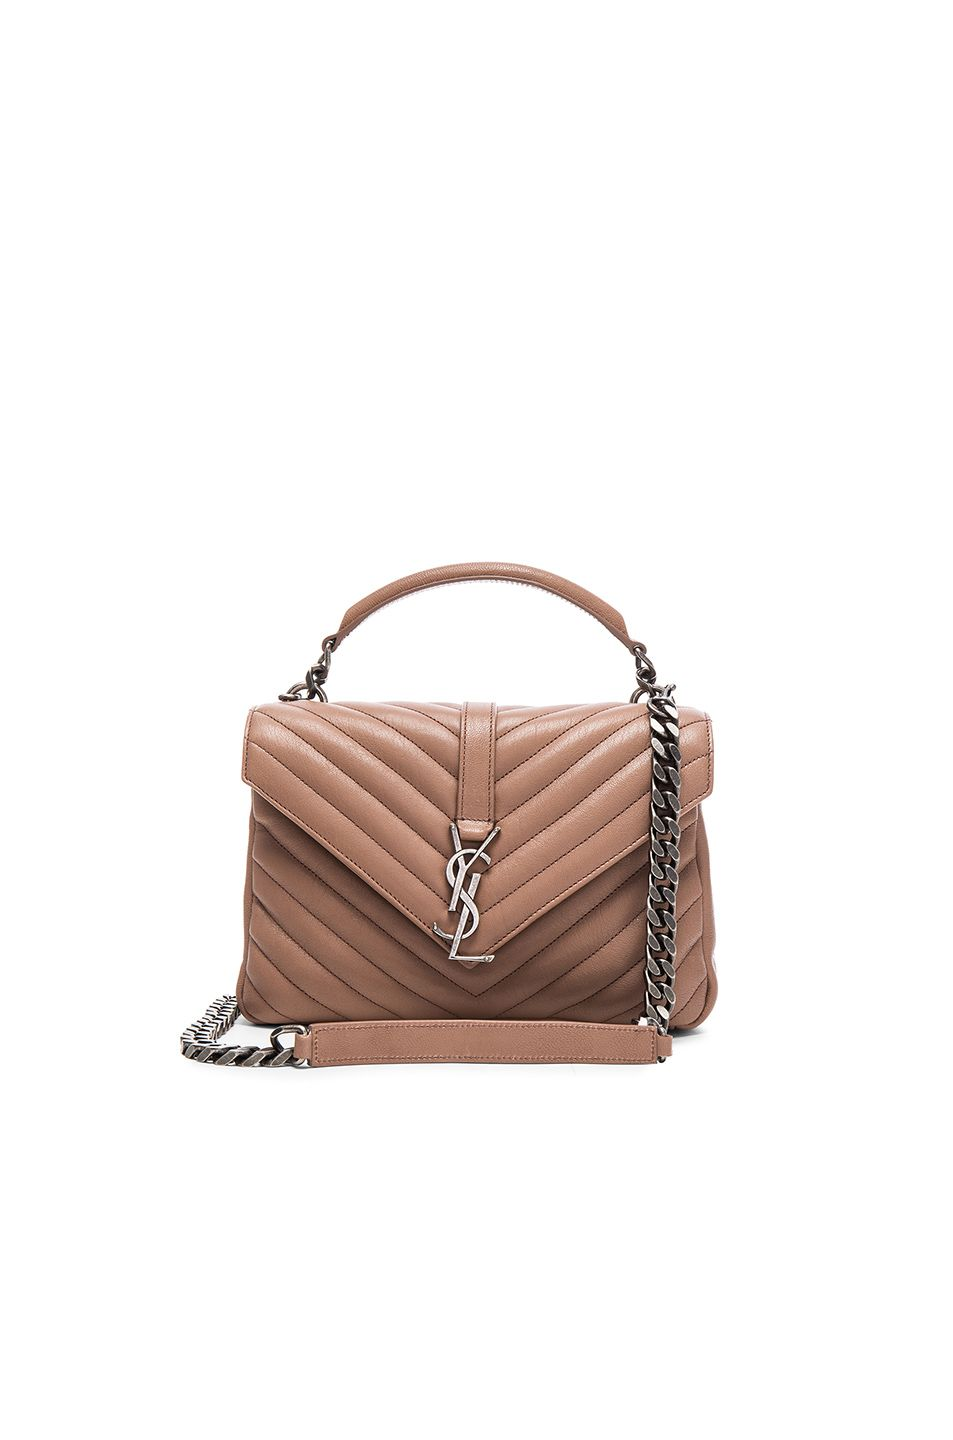 Image 1 of Saint Laurent Medium Monogram College Bag in Fard  637d3378d5bb7